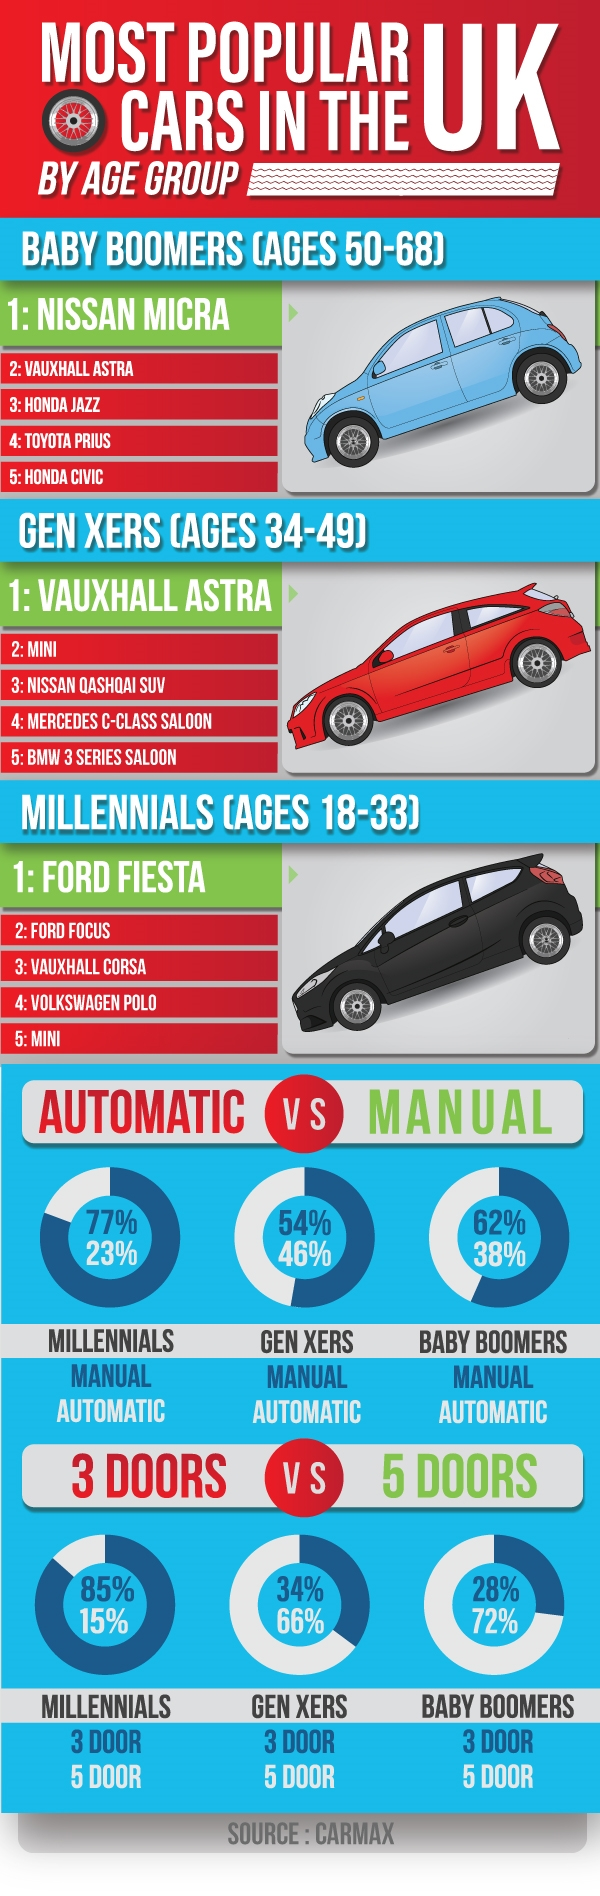 Most popular cars by age group in UK